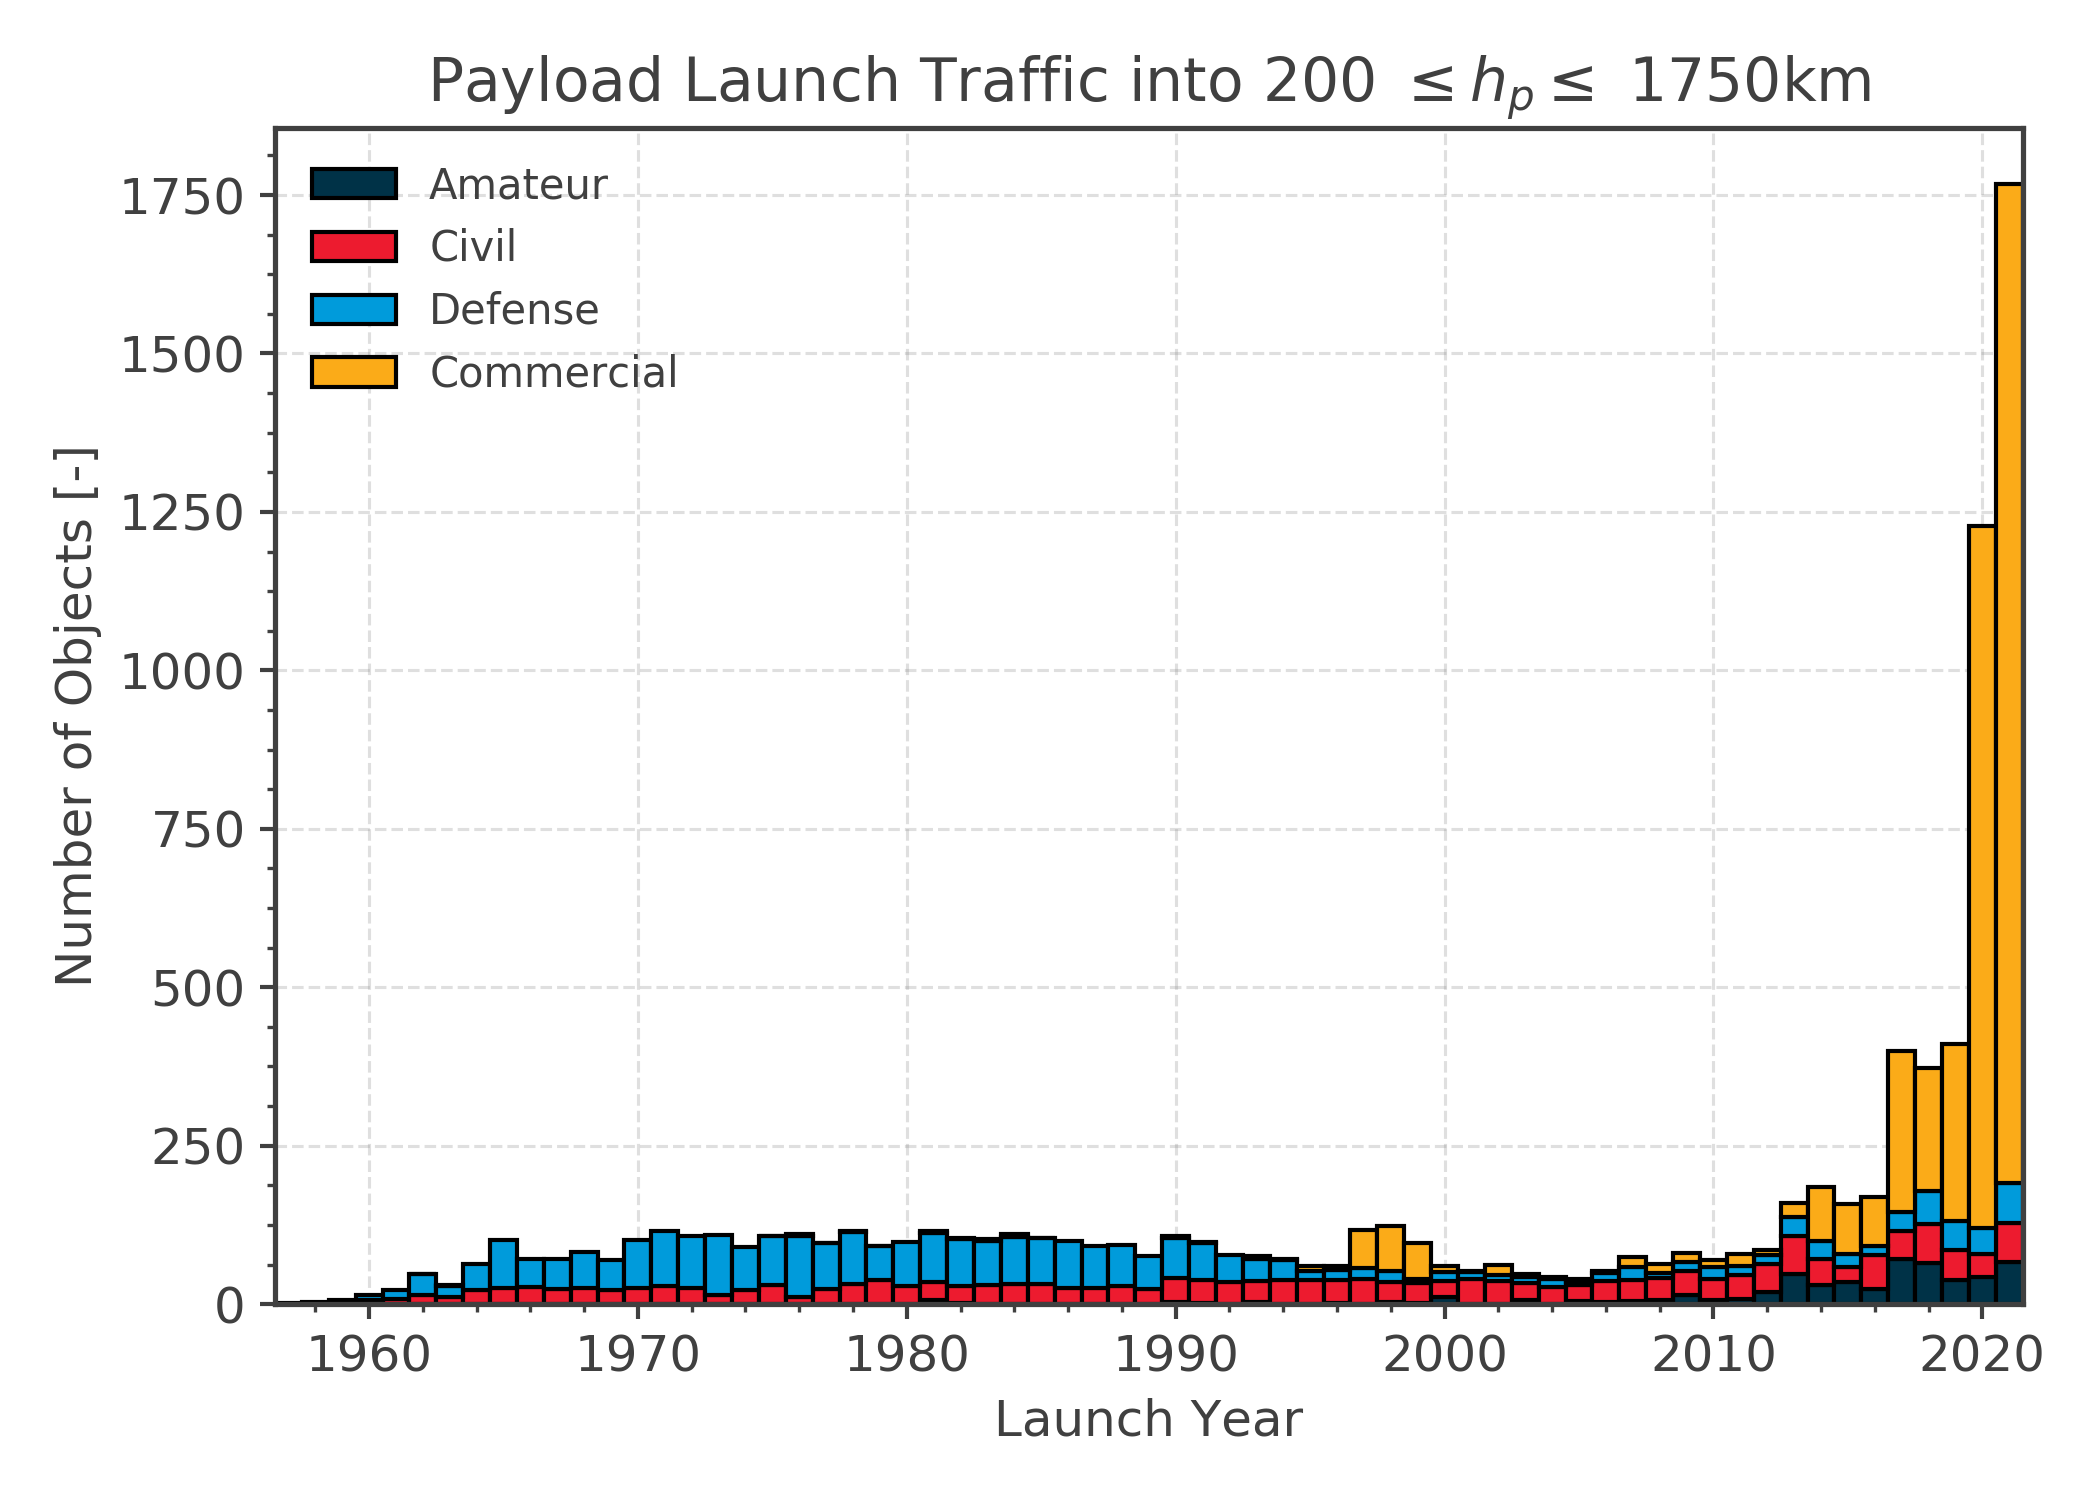 Launch traffic to LEO over time